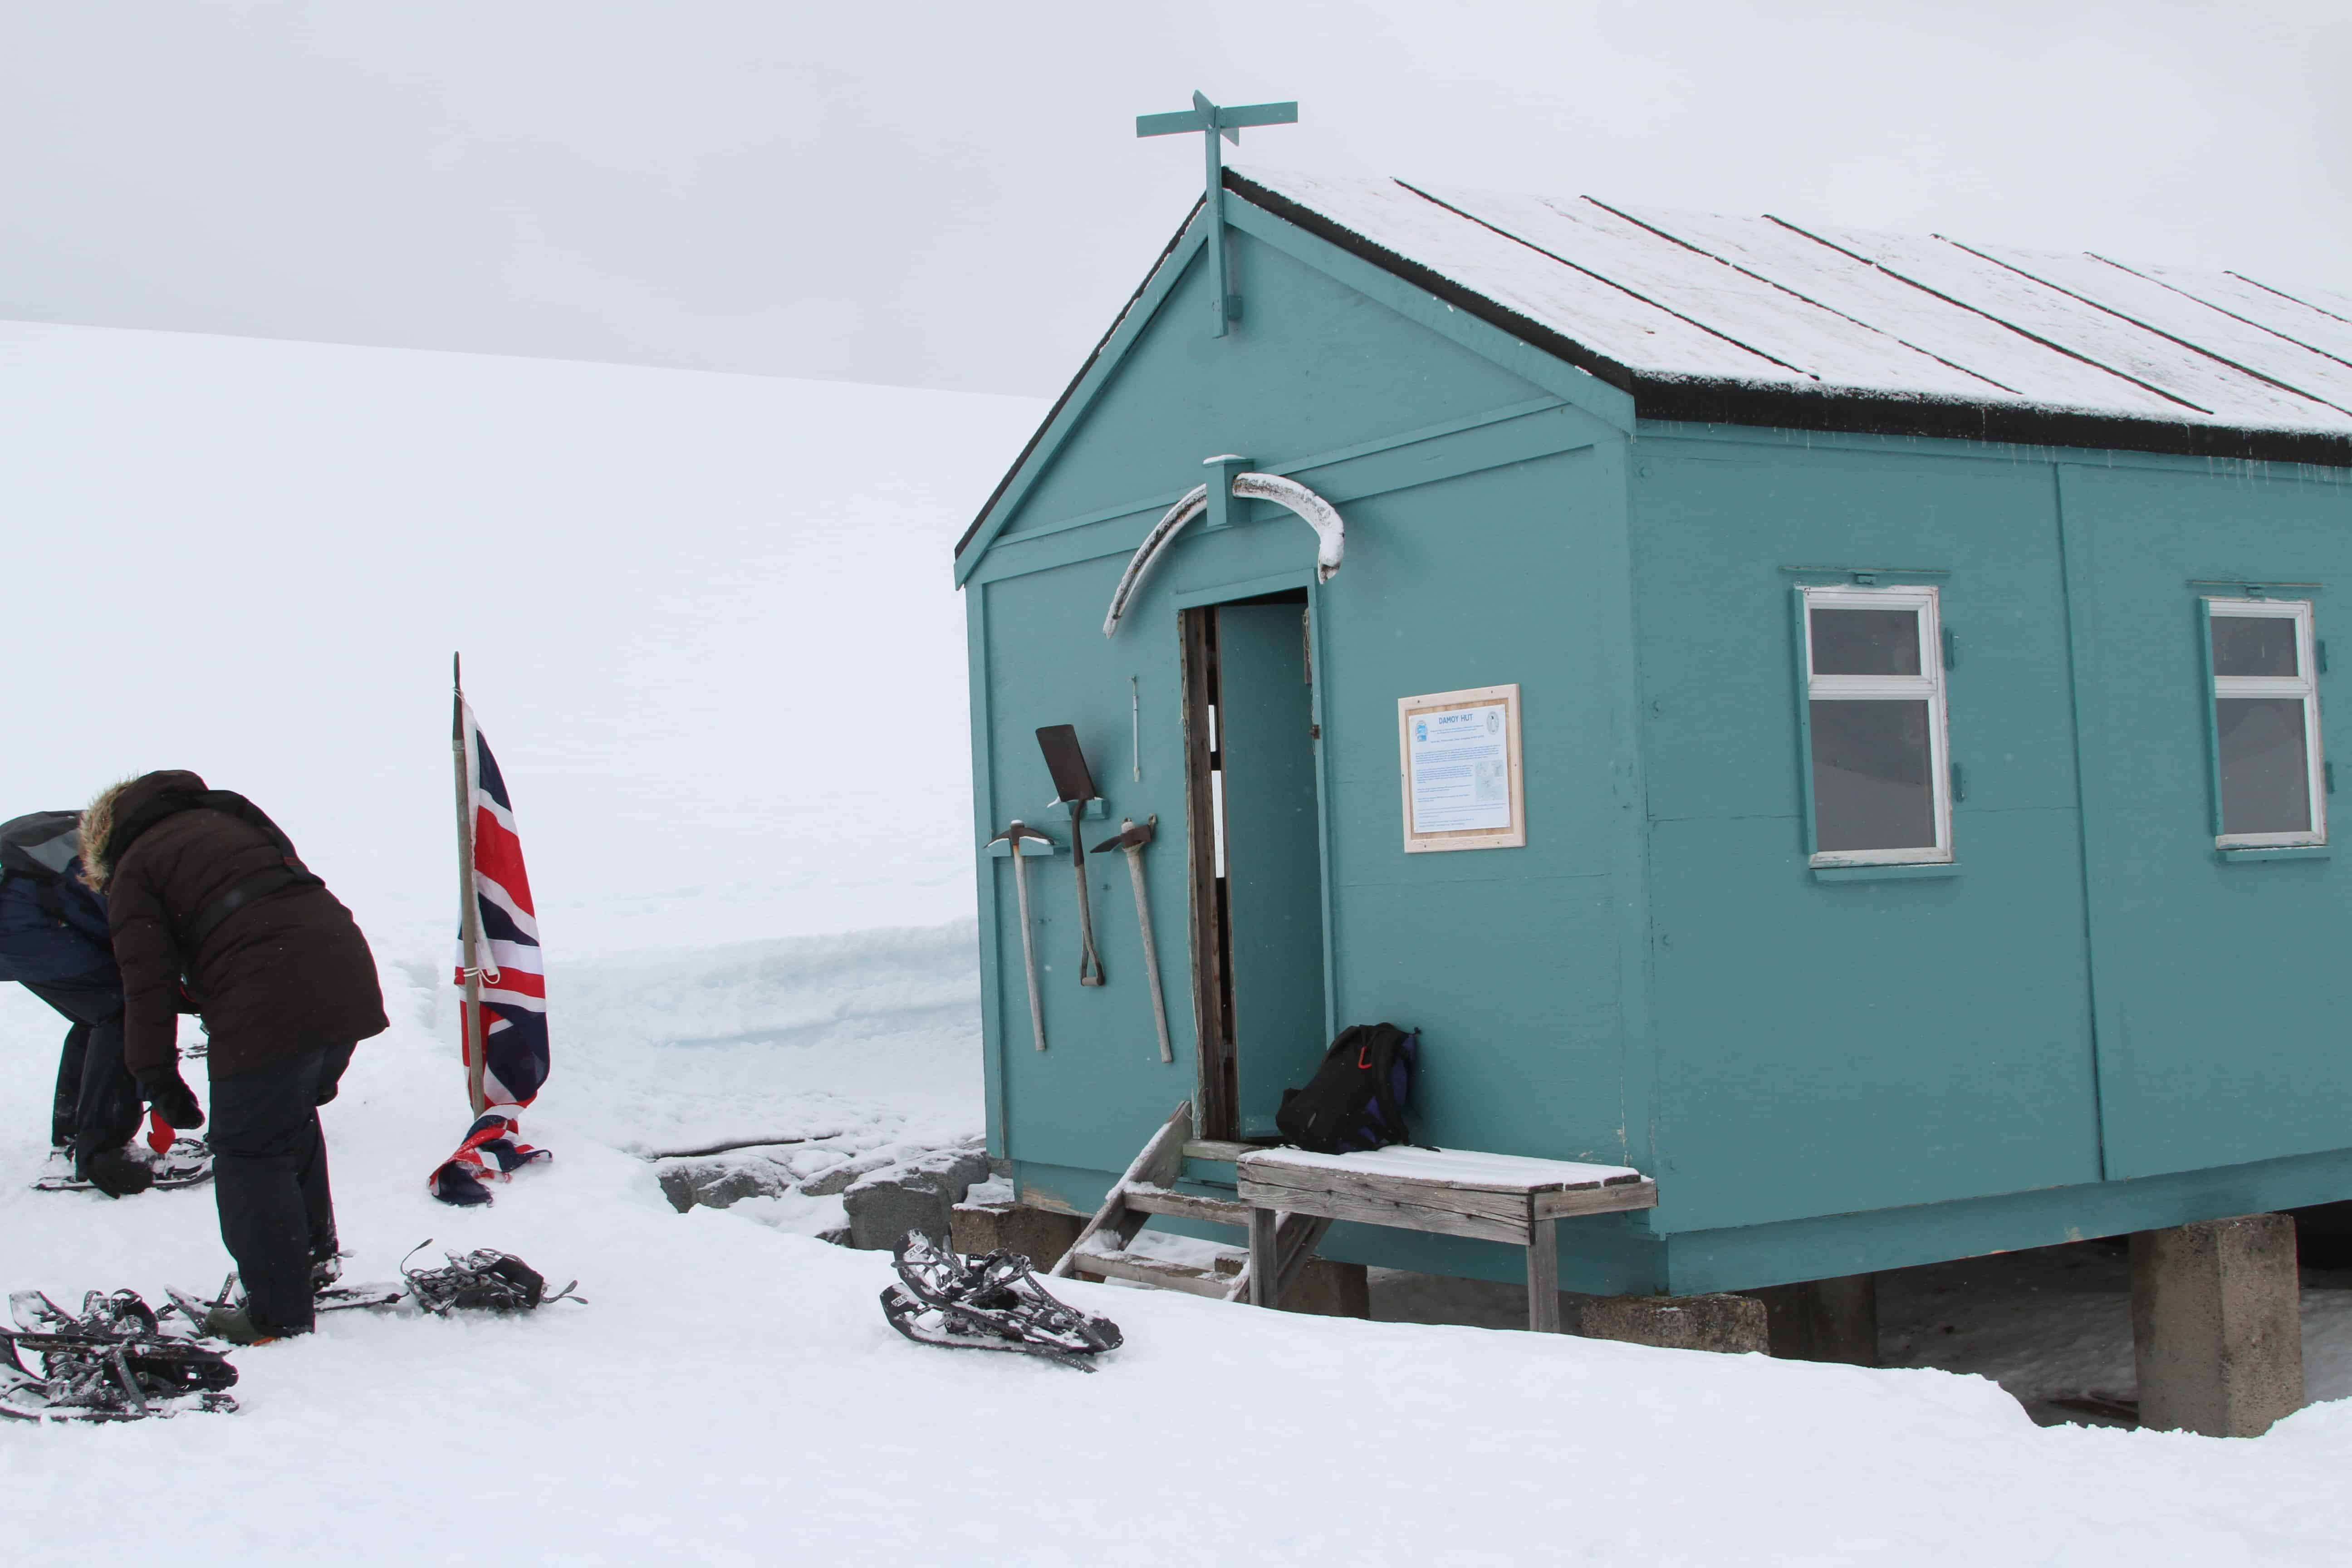 Damoy Hut, the British Antarctic Survey's ice airstrip from about 1973 to 1993; Copyright: Dr Mike Pienkowski